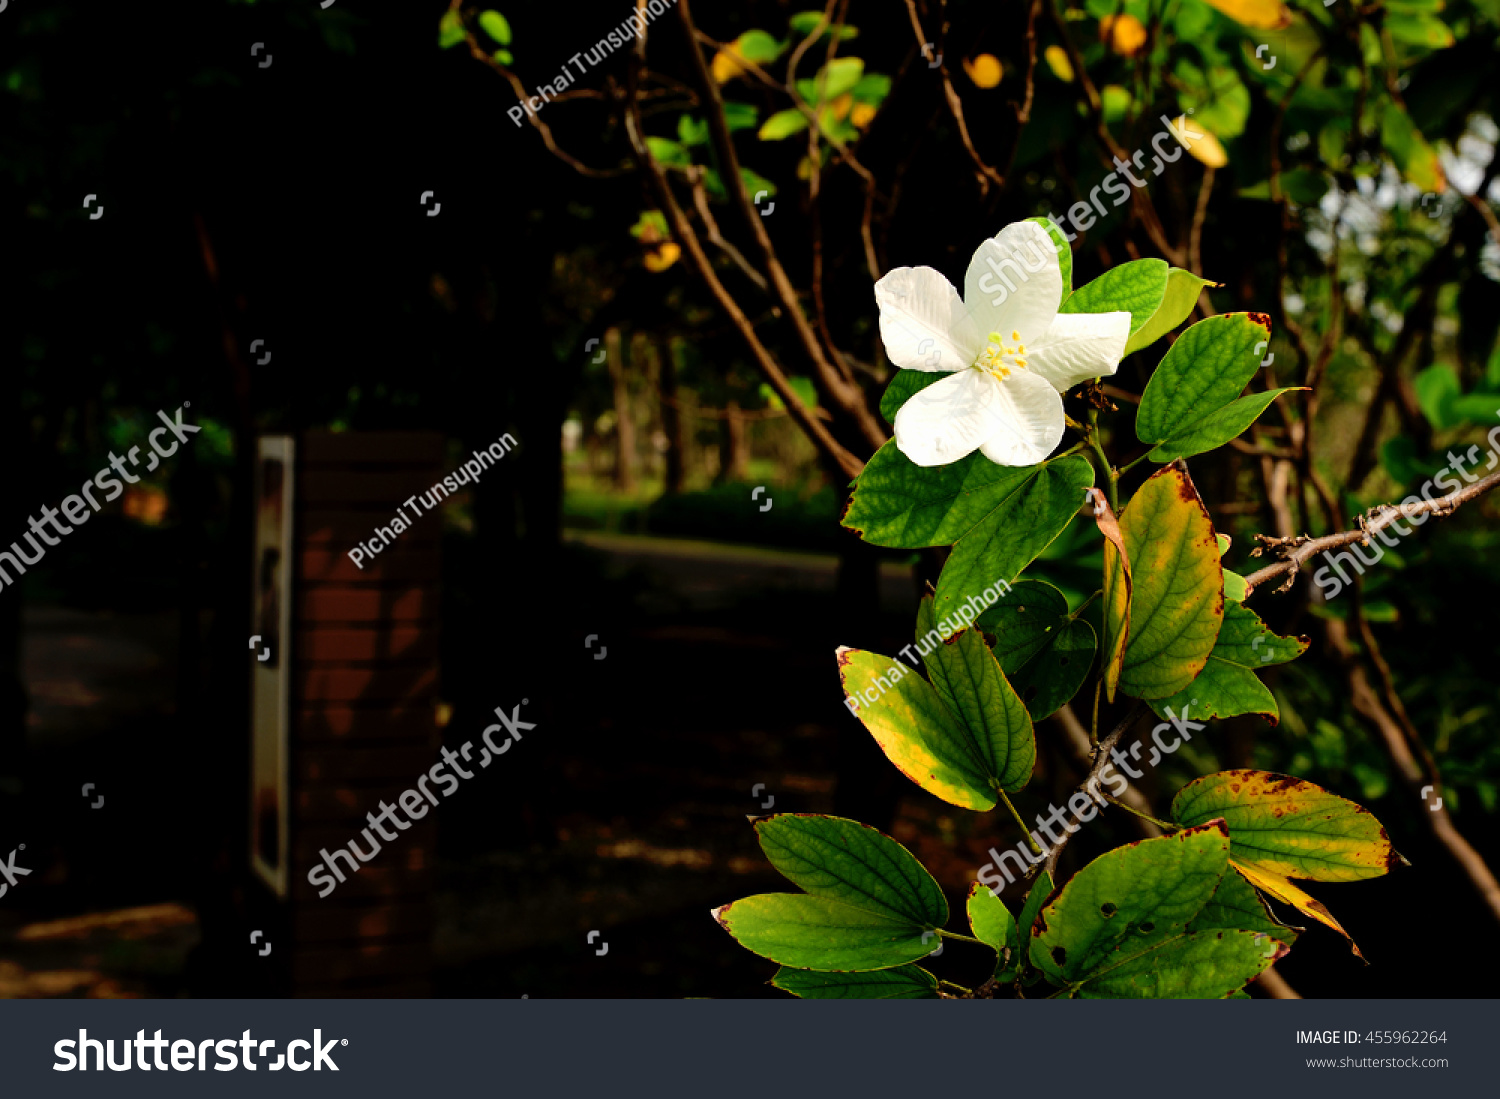 Tropical plant bilobed leaves fragrant white stock photo edit now the tropical plant with bilobed leaves and fragrant white flower mightylinksfo